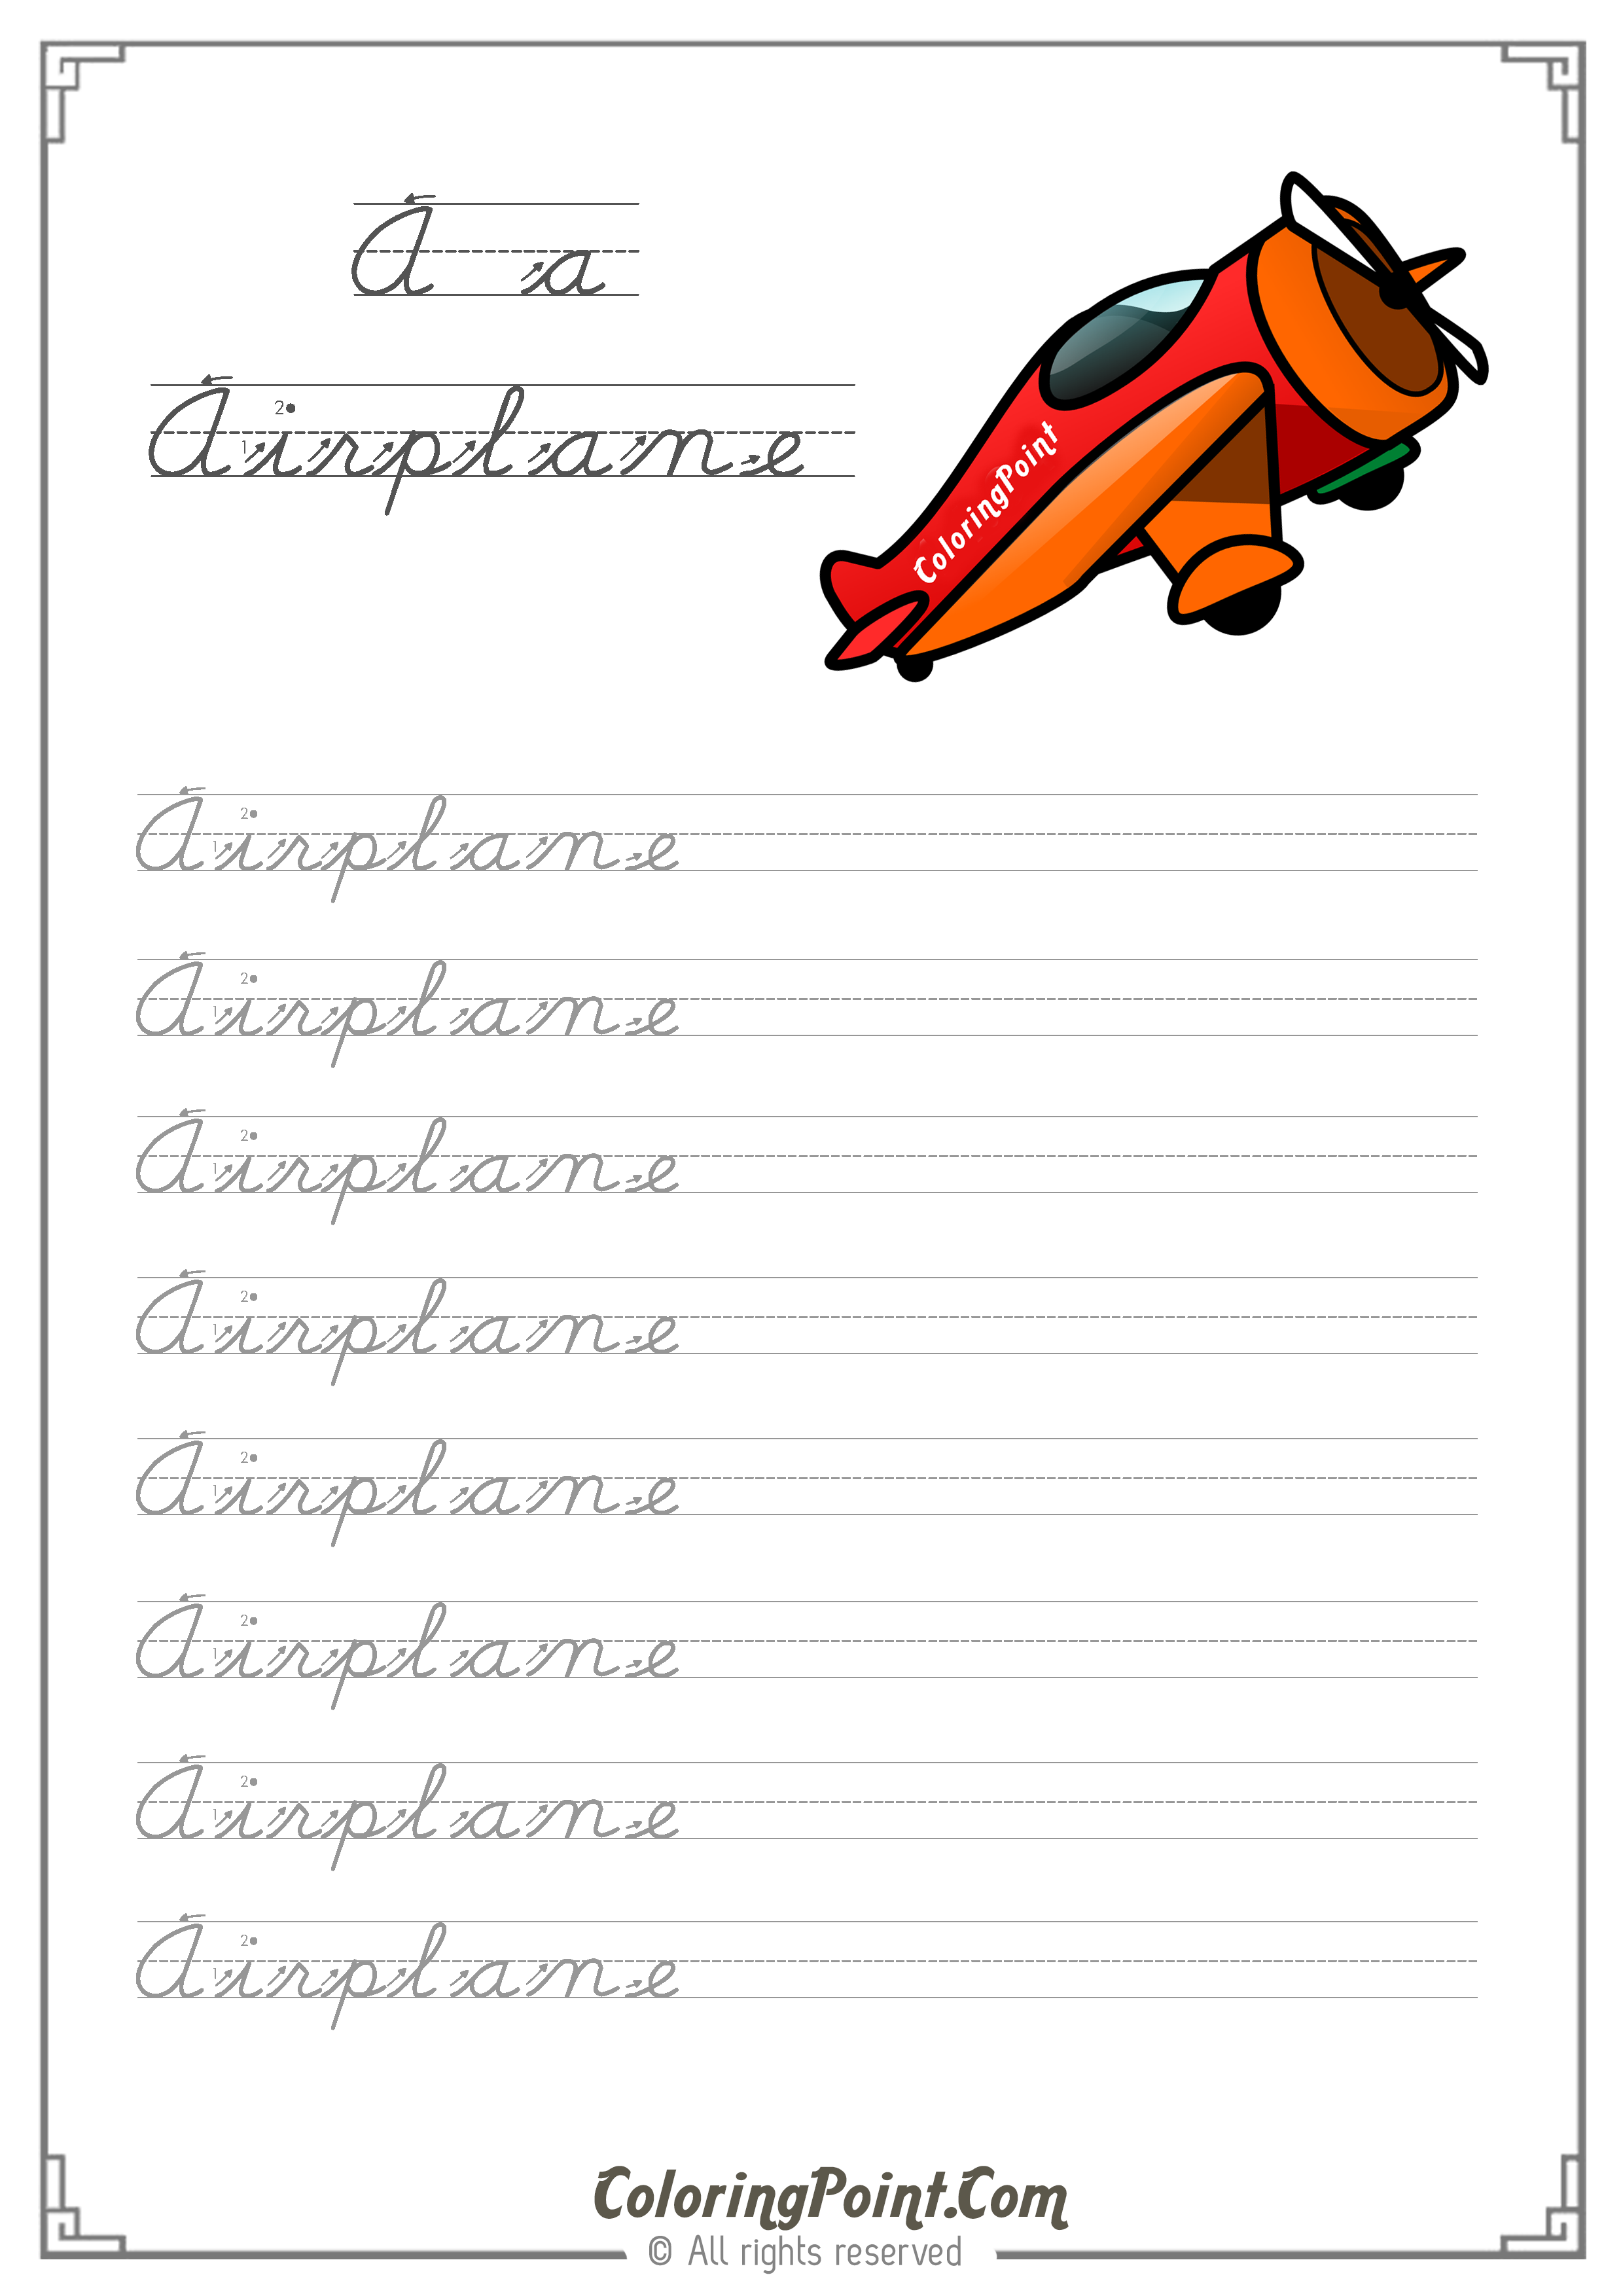 Practice Writing The Word Airplane Worksheet